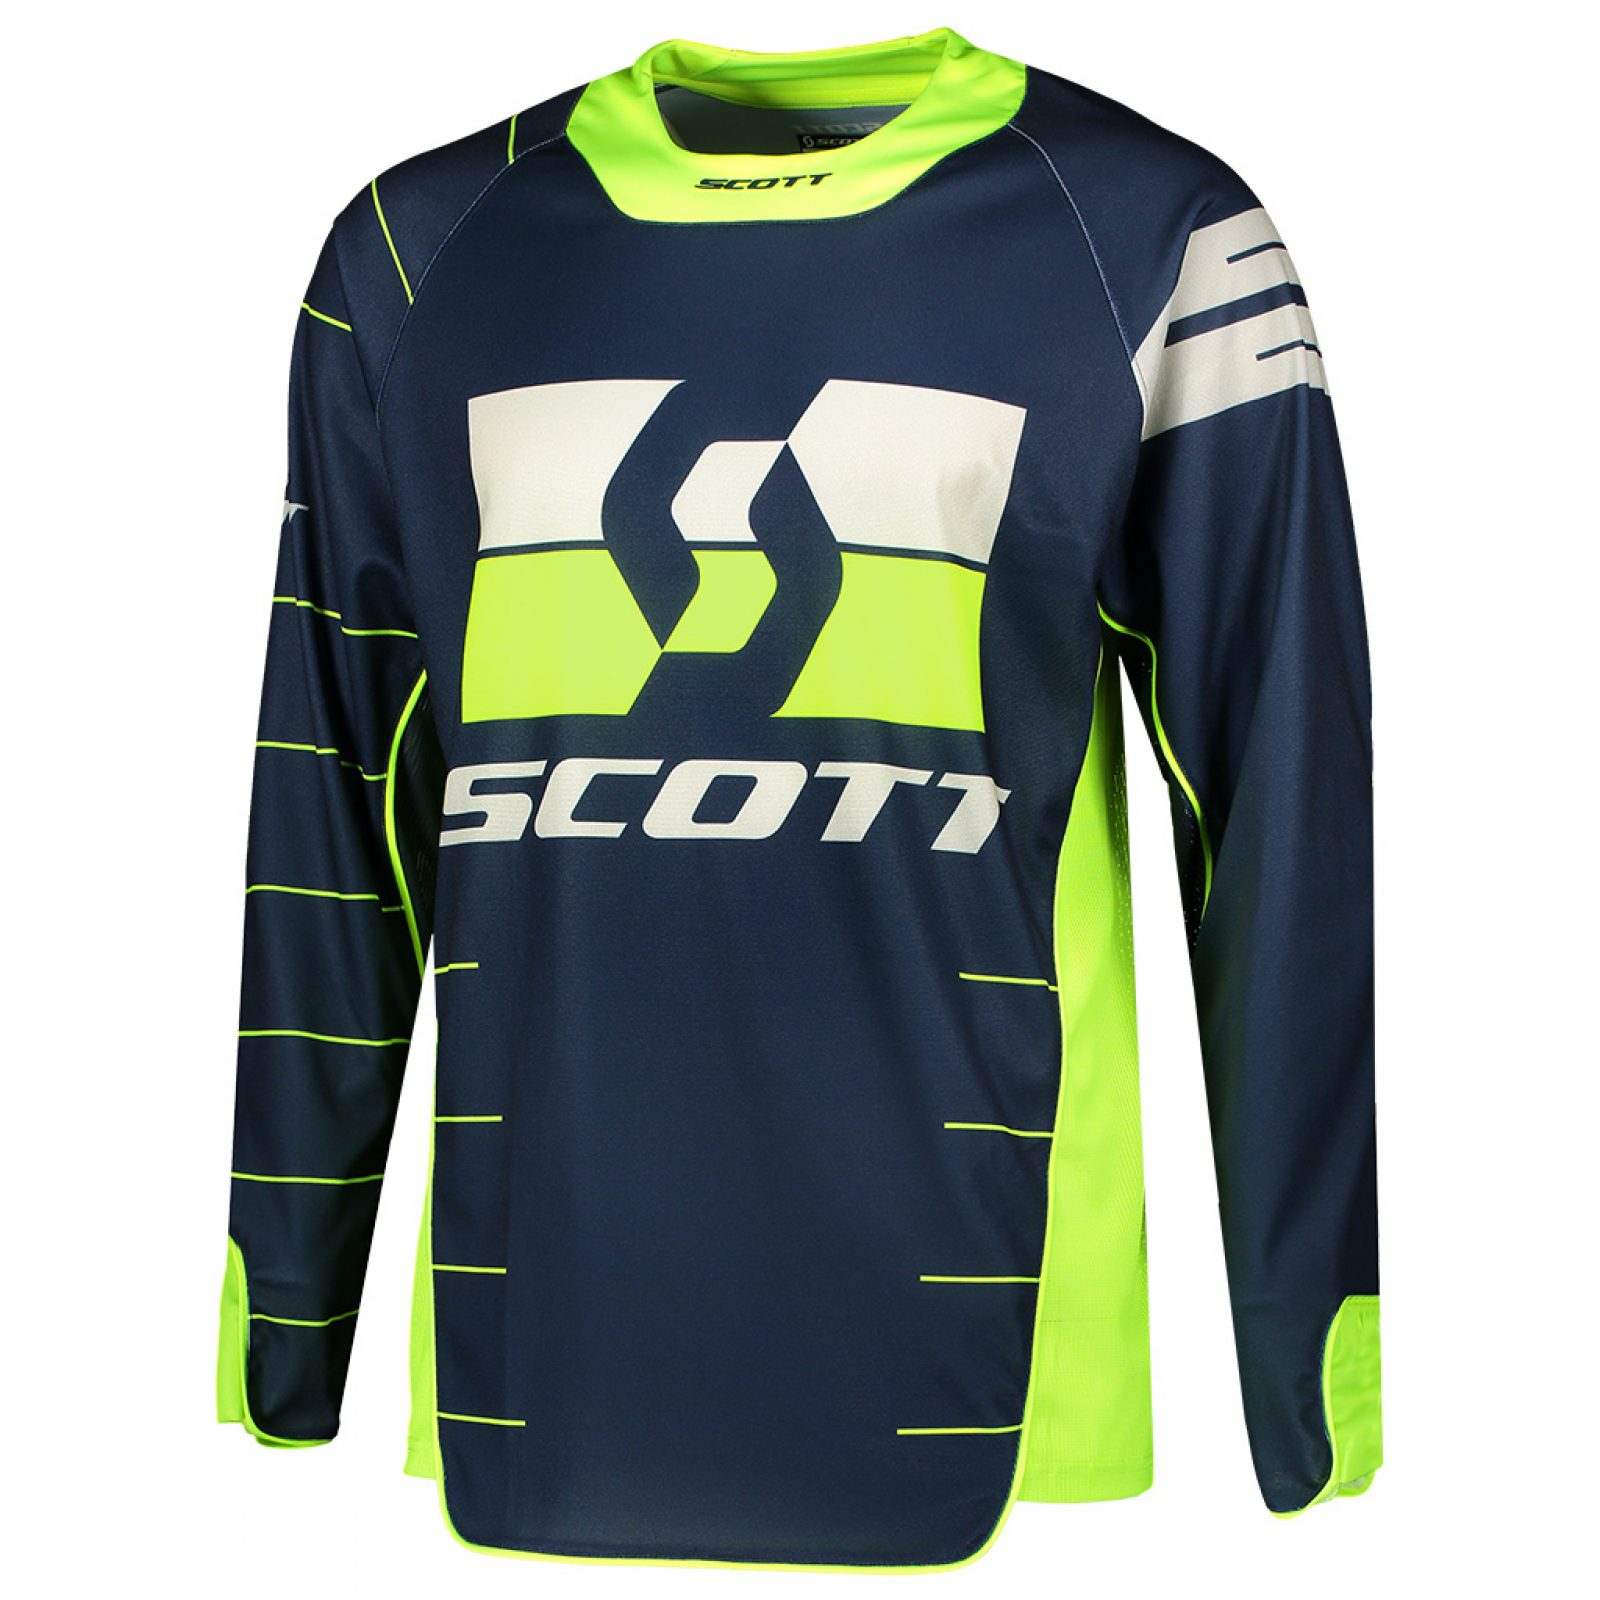 SCOTT_ENDURO_JERSEY_BLUE